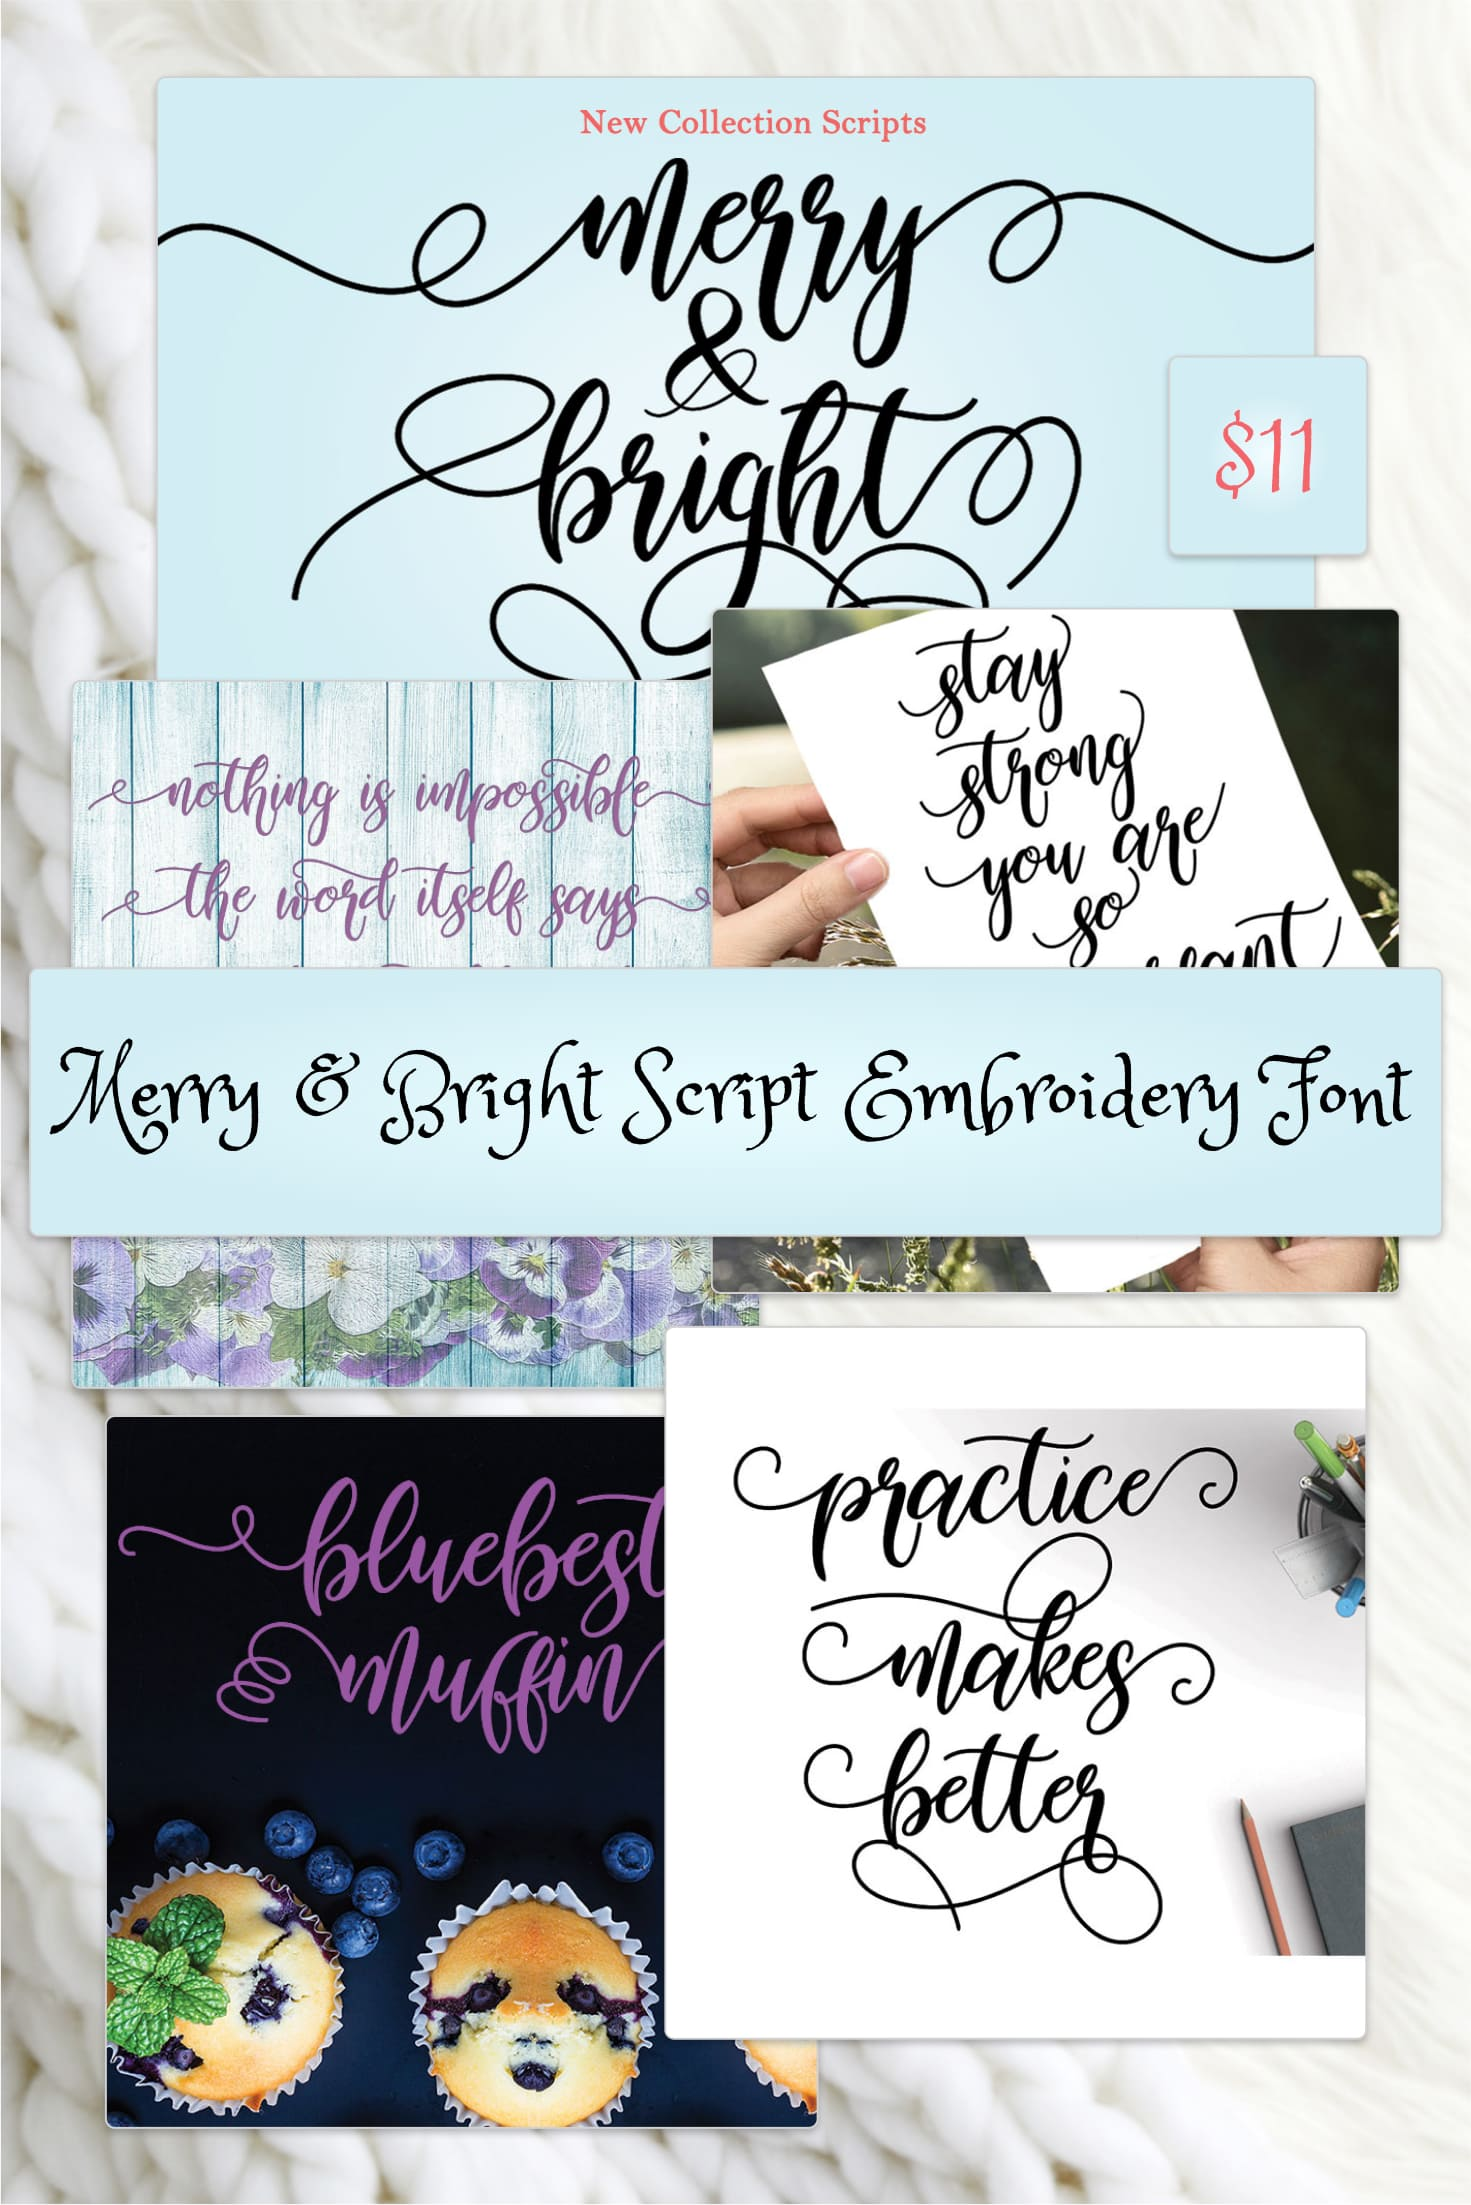 Pinterest Image: Merry & Bright Script Embroidery Font.